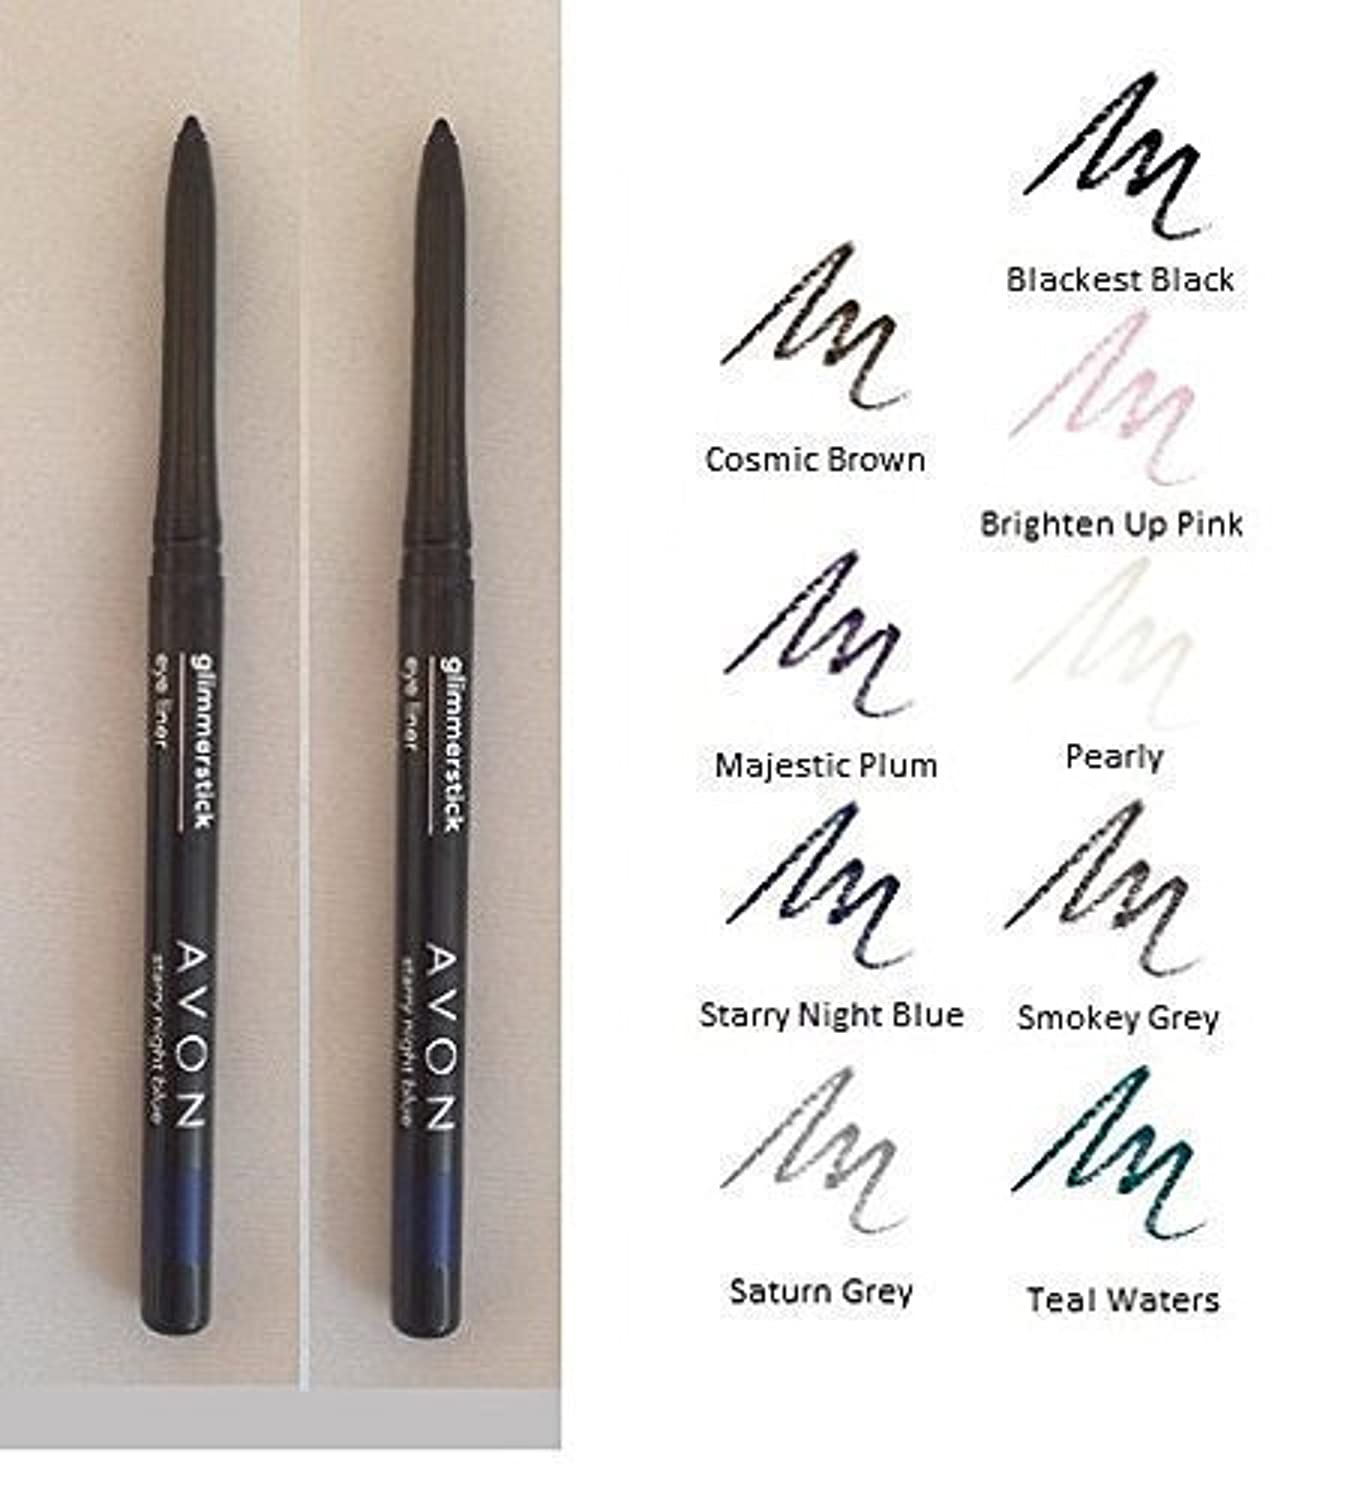 2 X Avon Glimmerstick Eyeliner - Twin pack - Two the same (Blackest Black)